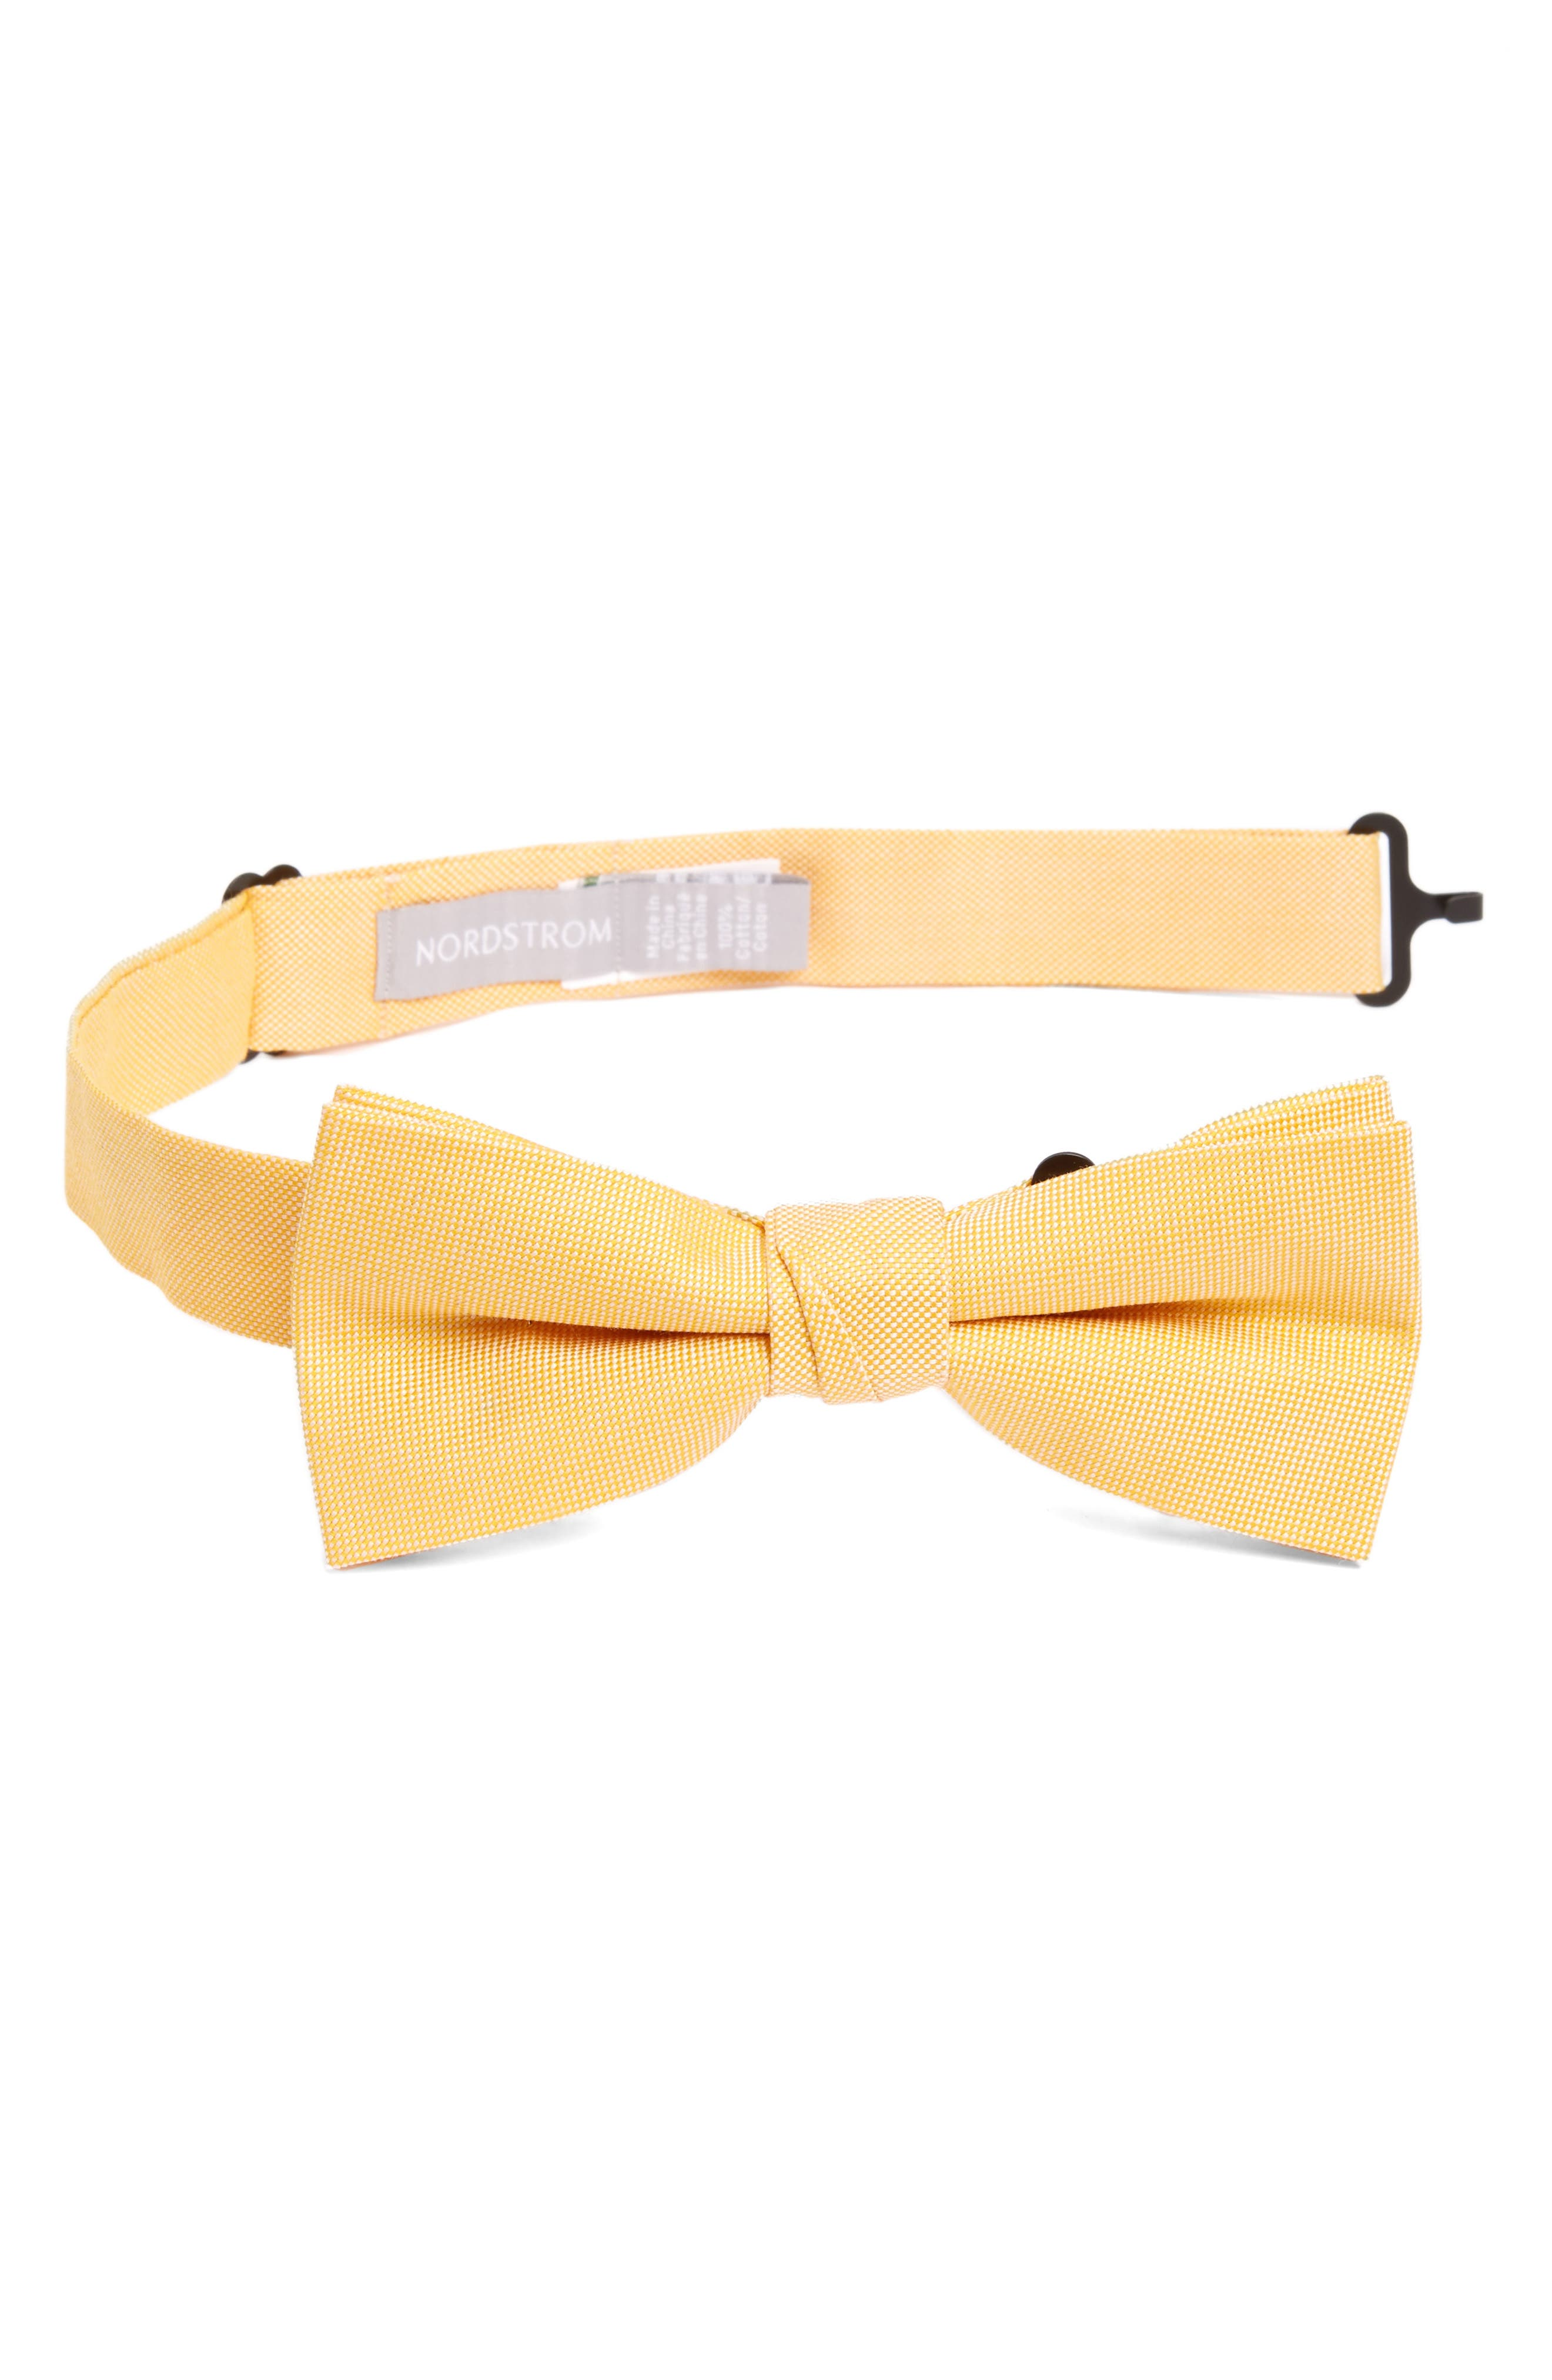 Nordstrom Check Cotton Bow Tie (Big Boys)